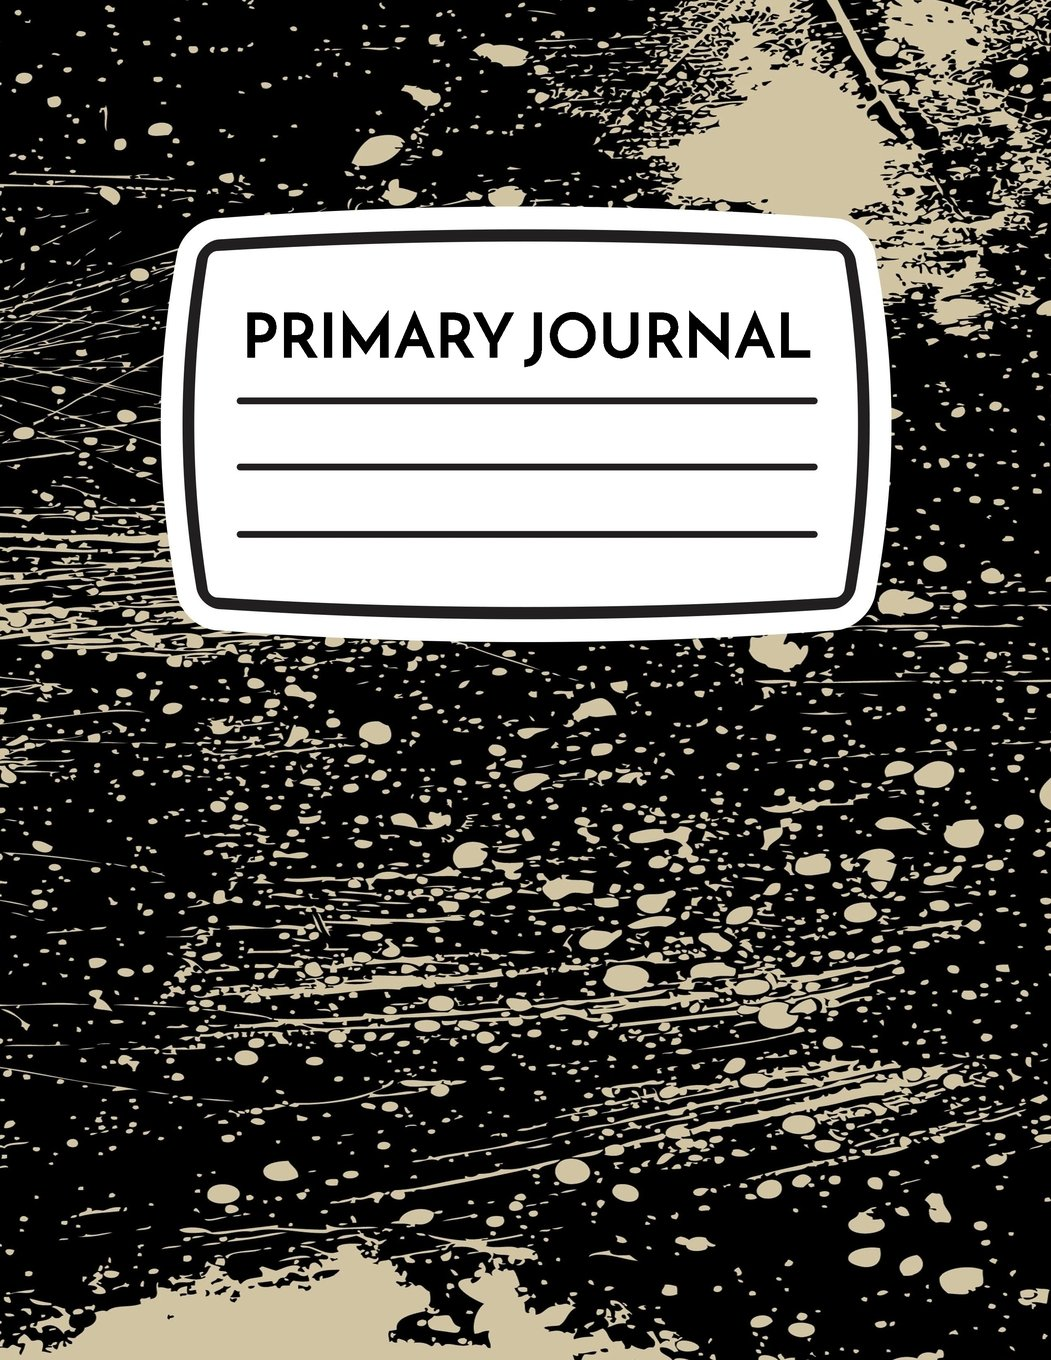 primary-journal-primary-journal-notebooks-grades-k-2-all-lines-5-8-wide-primary-composition-notebooks-v25